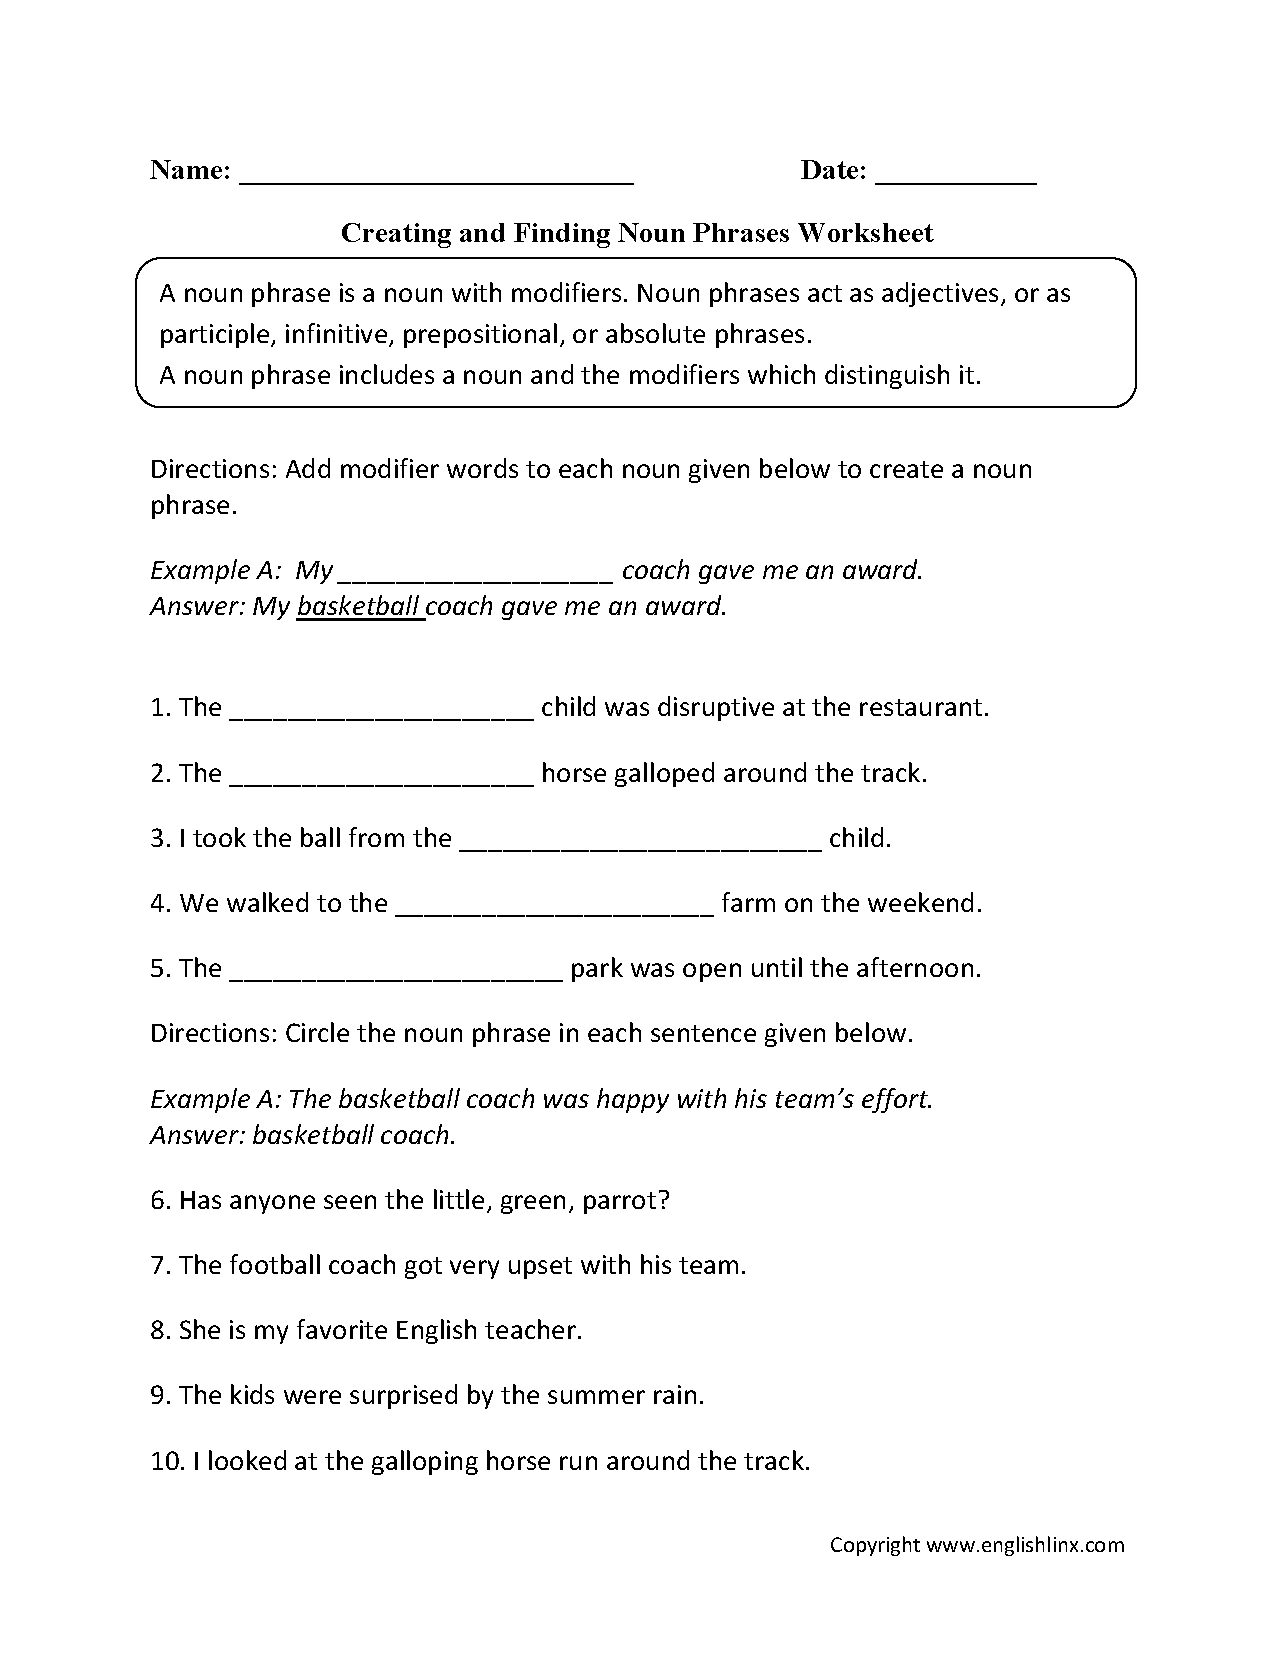 Creating And Finding Noun Phrases Worksheets With Images